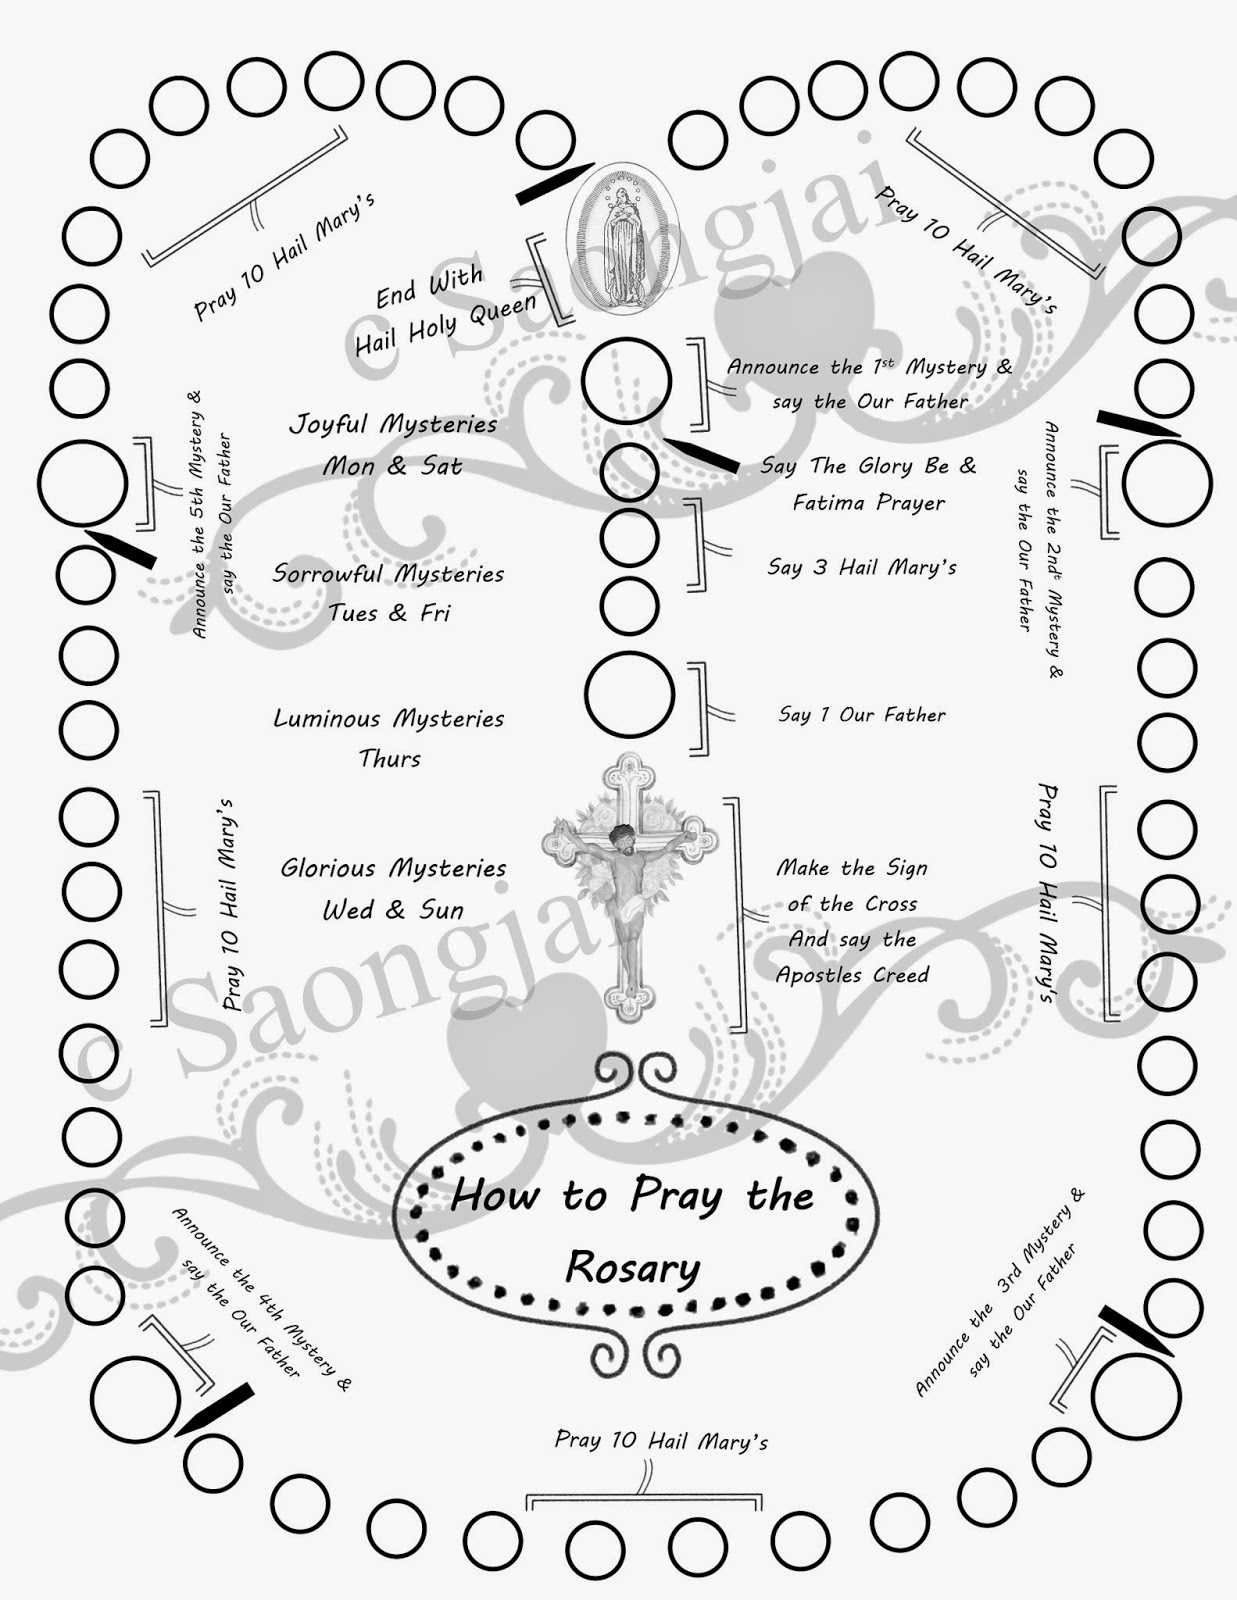 image about Mysteries of the Rosary Printable identified as Rosary Drawing Illustrations or photos at  No cost for